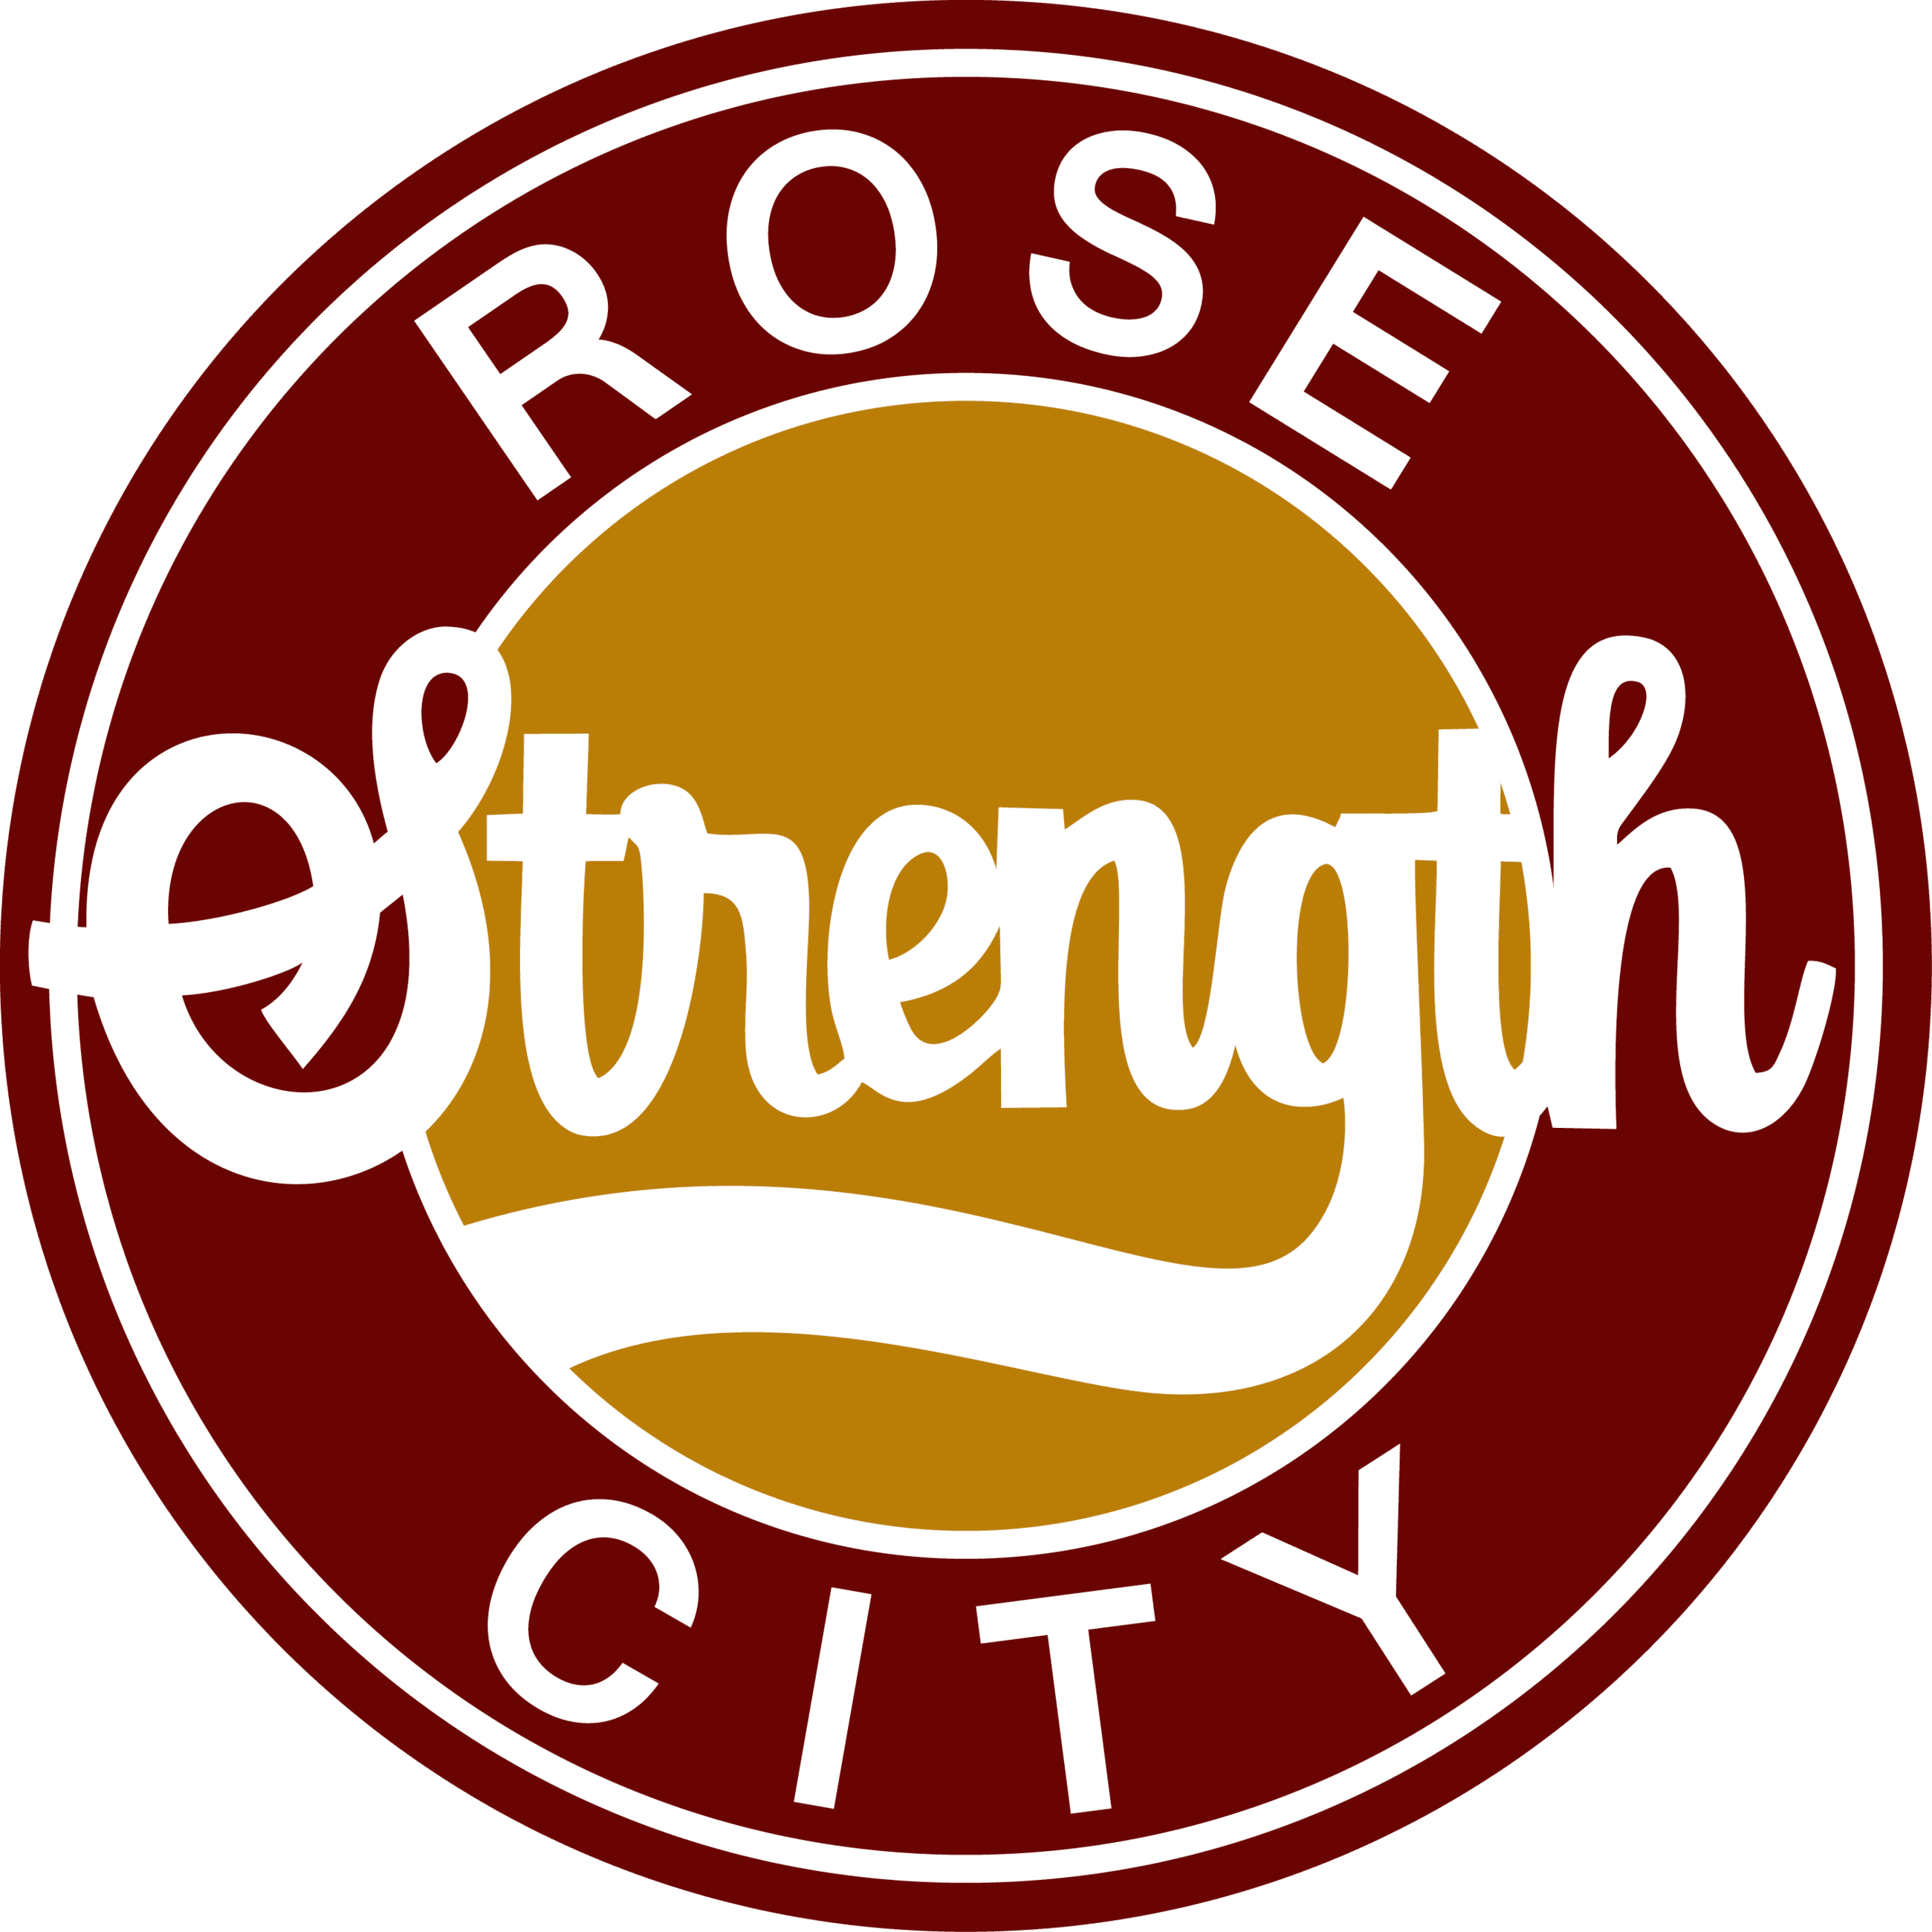 ROSE CITY STRENGTH LOGO